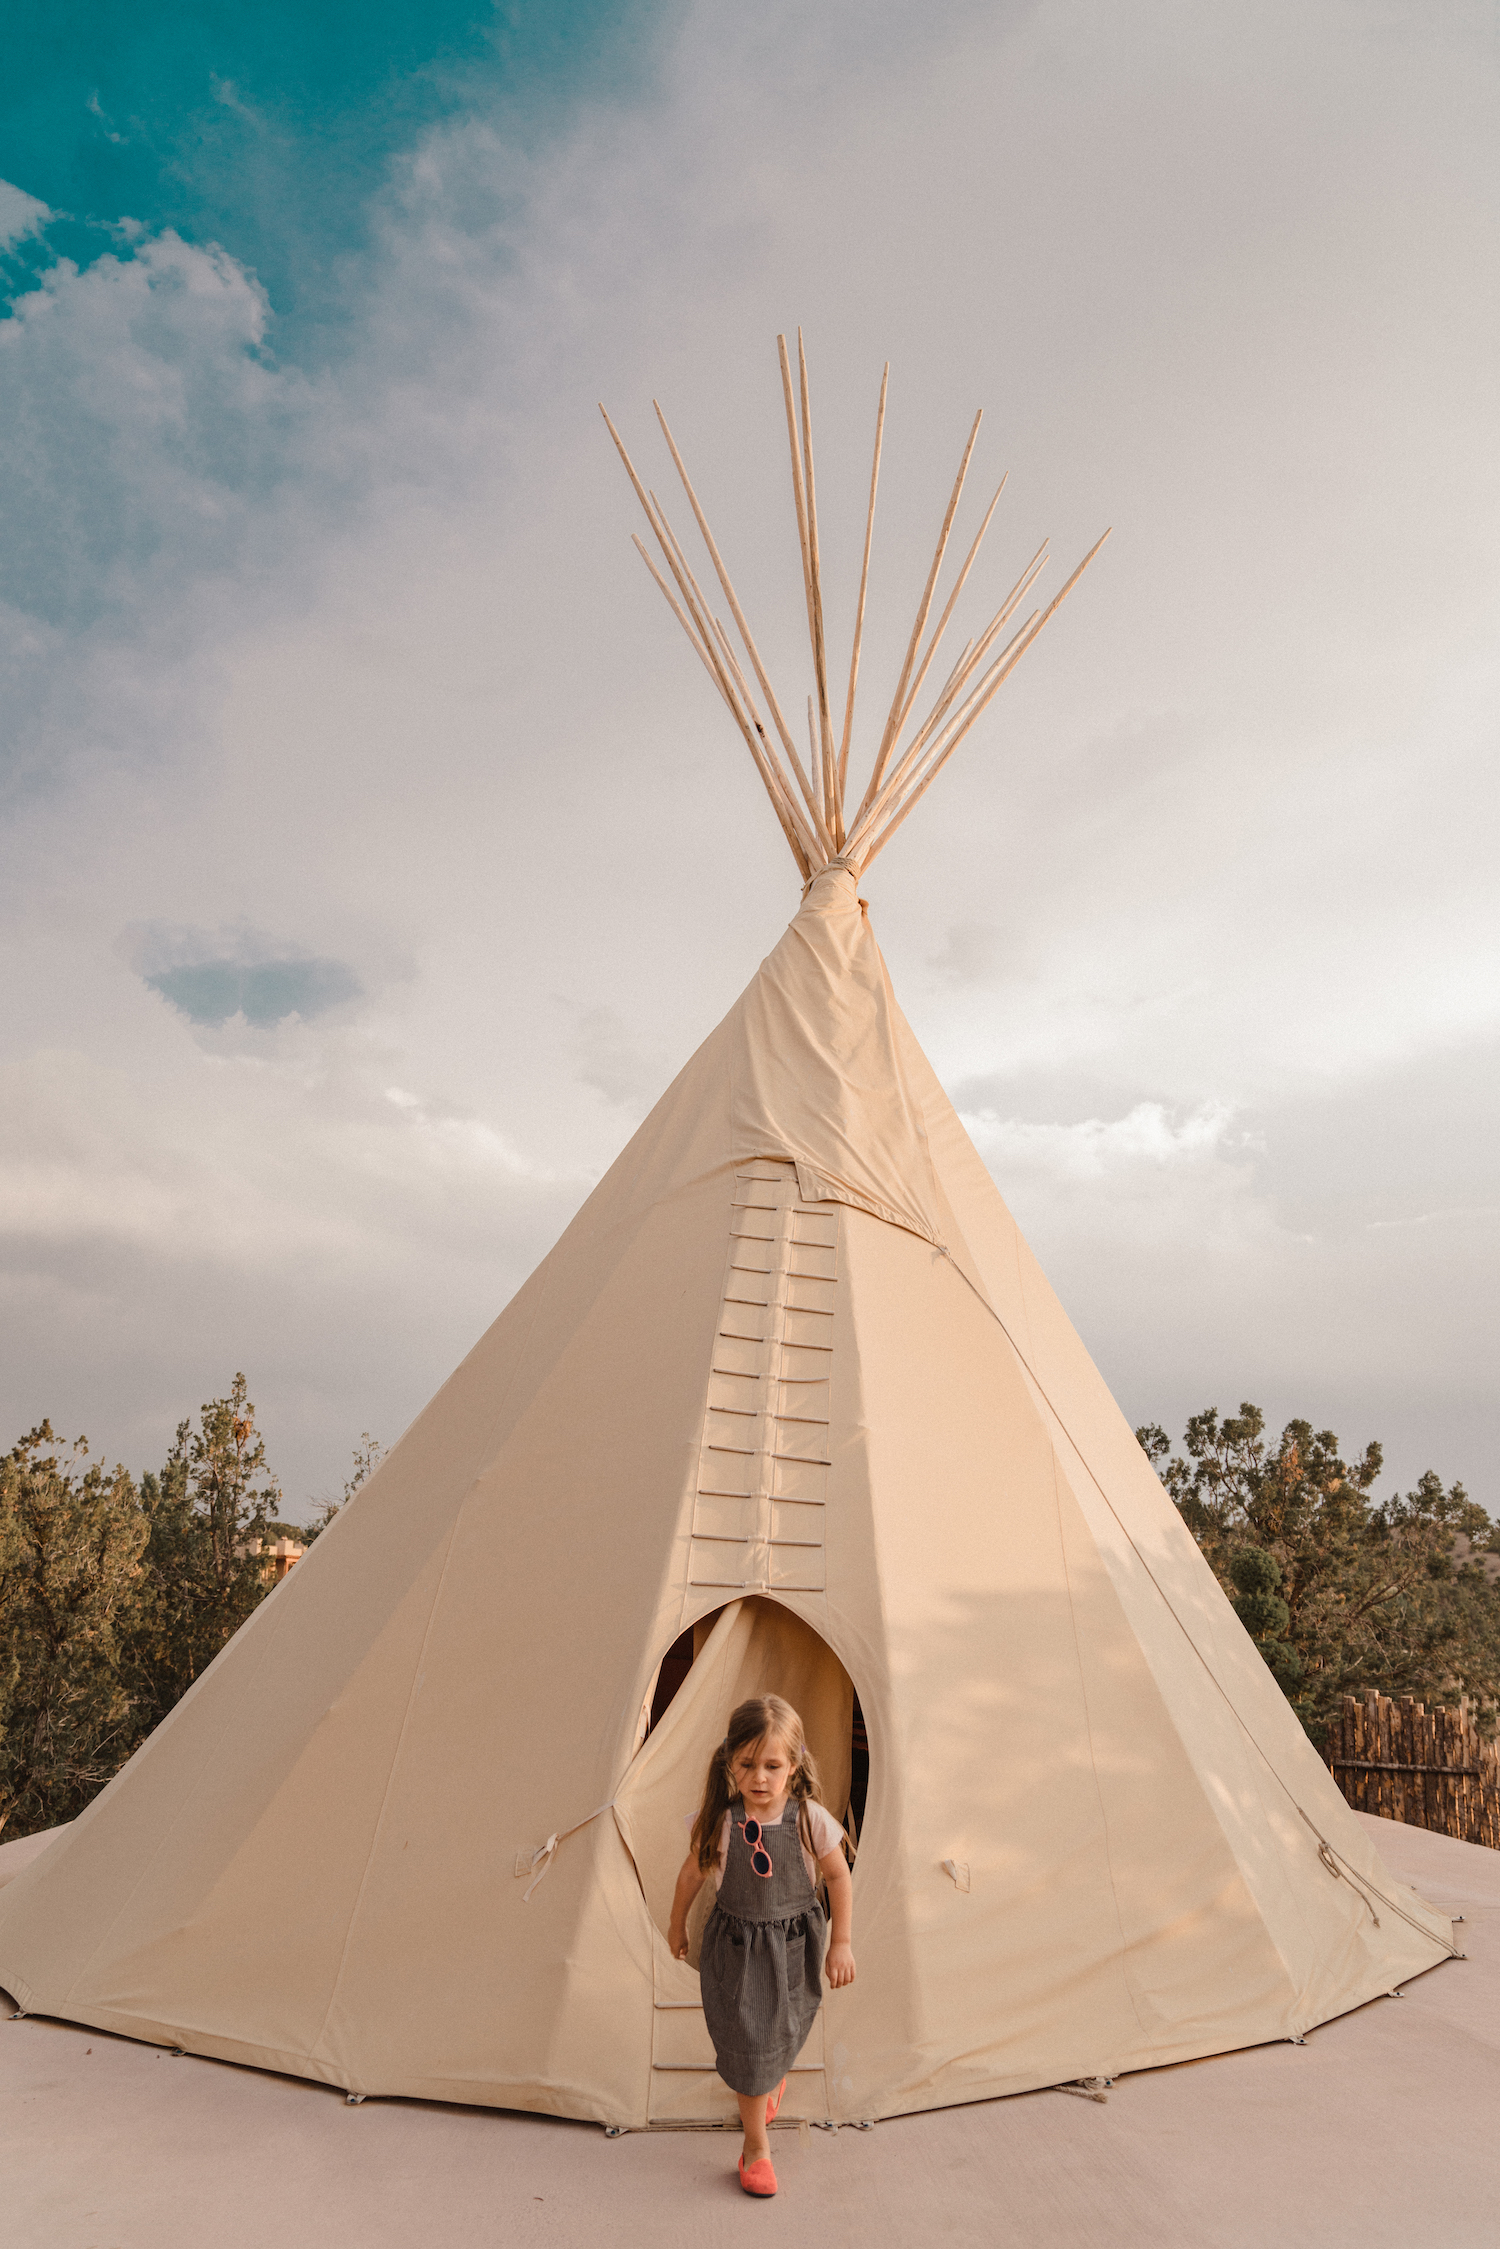 A girl next to a teepee